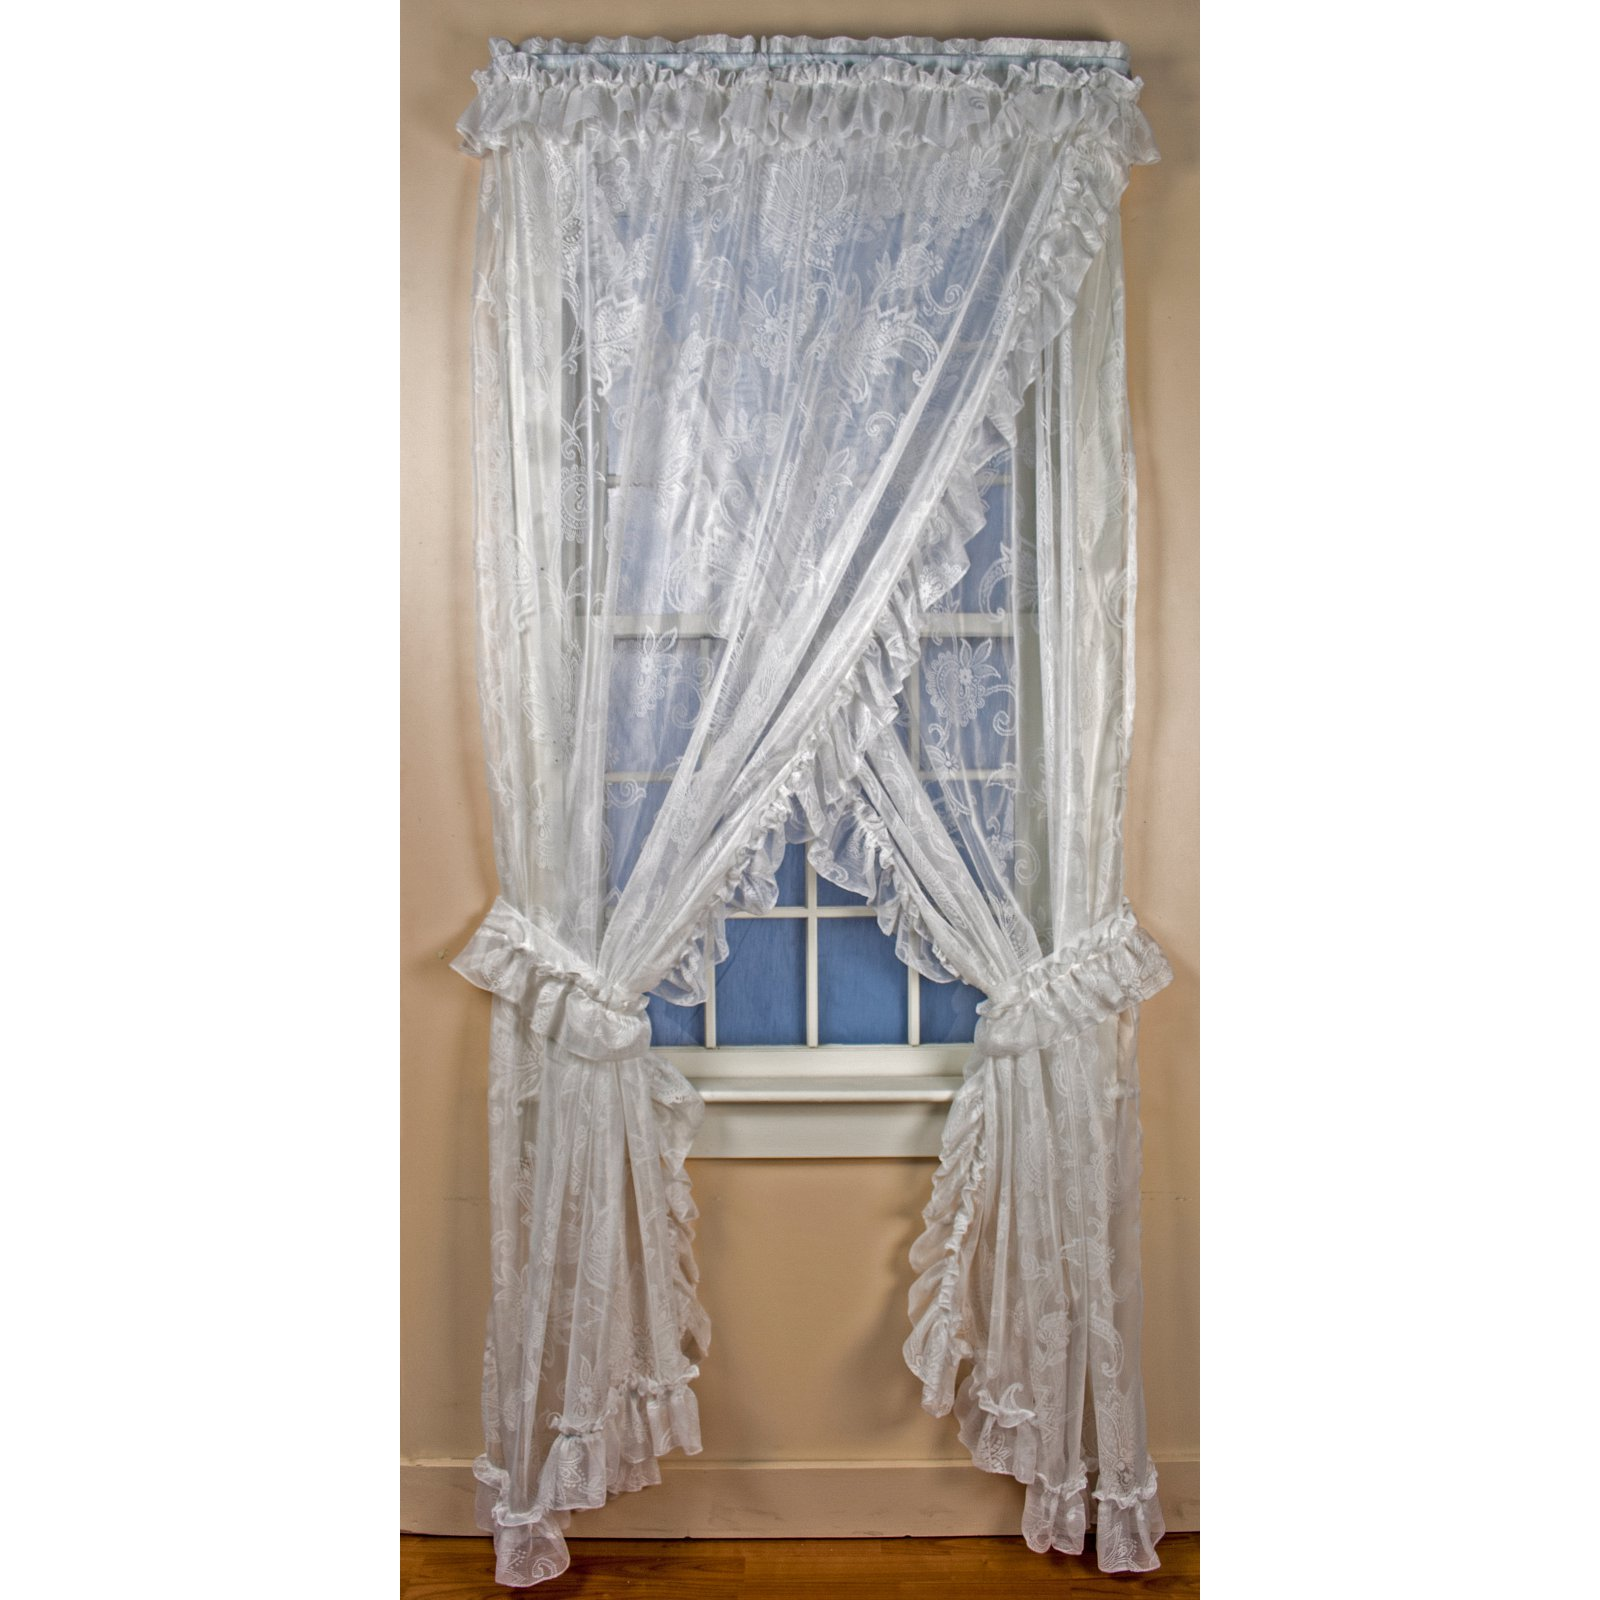 Ellis Curtain Beverly Lace Ruffled Priscilla Curtain Panel Set